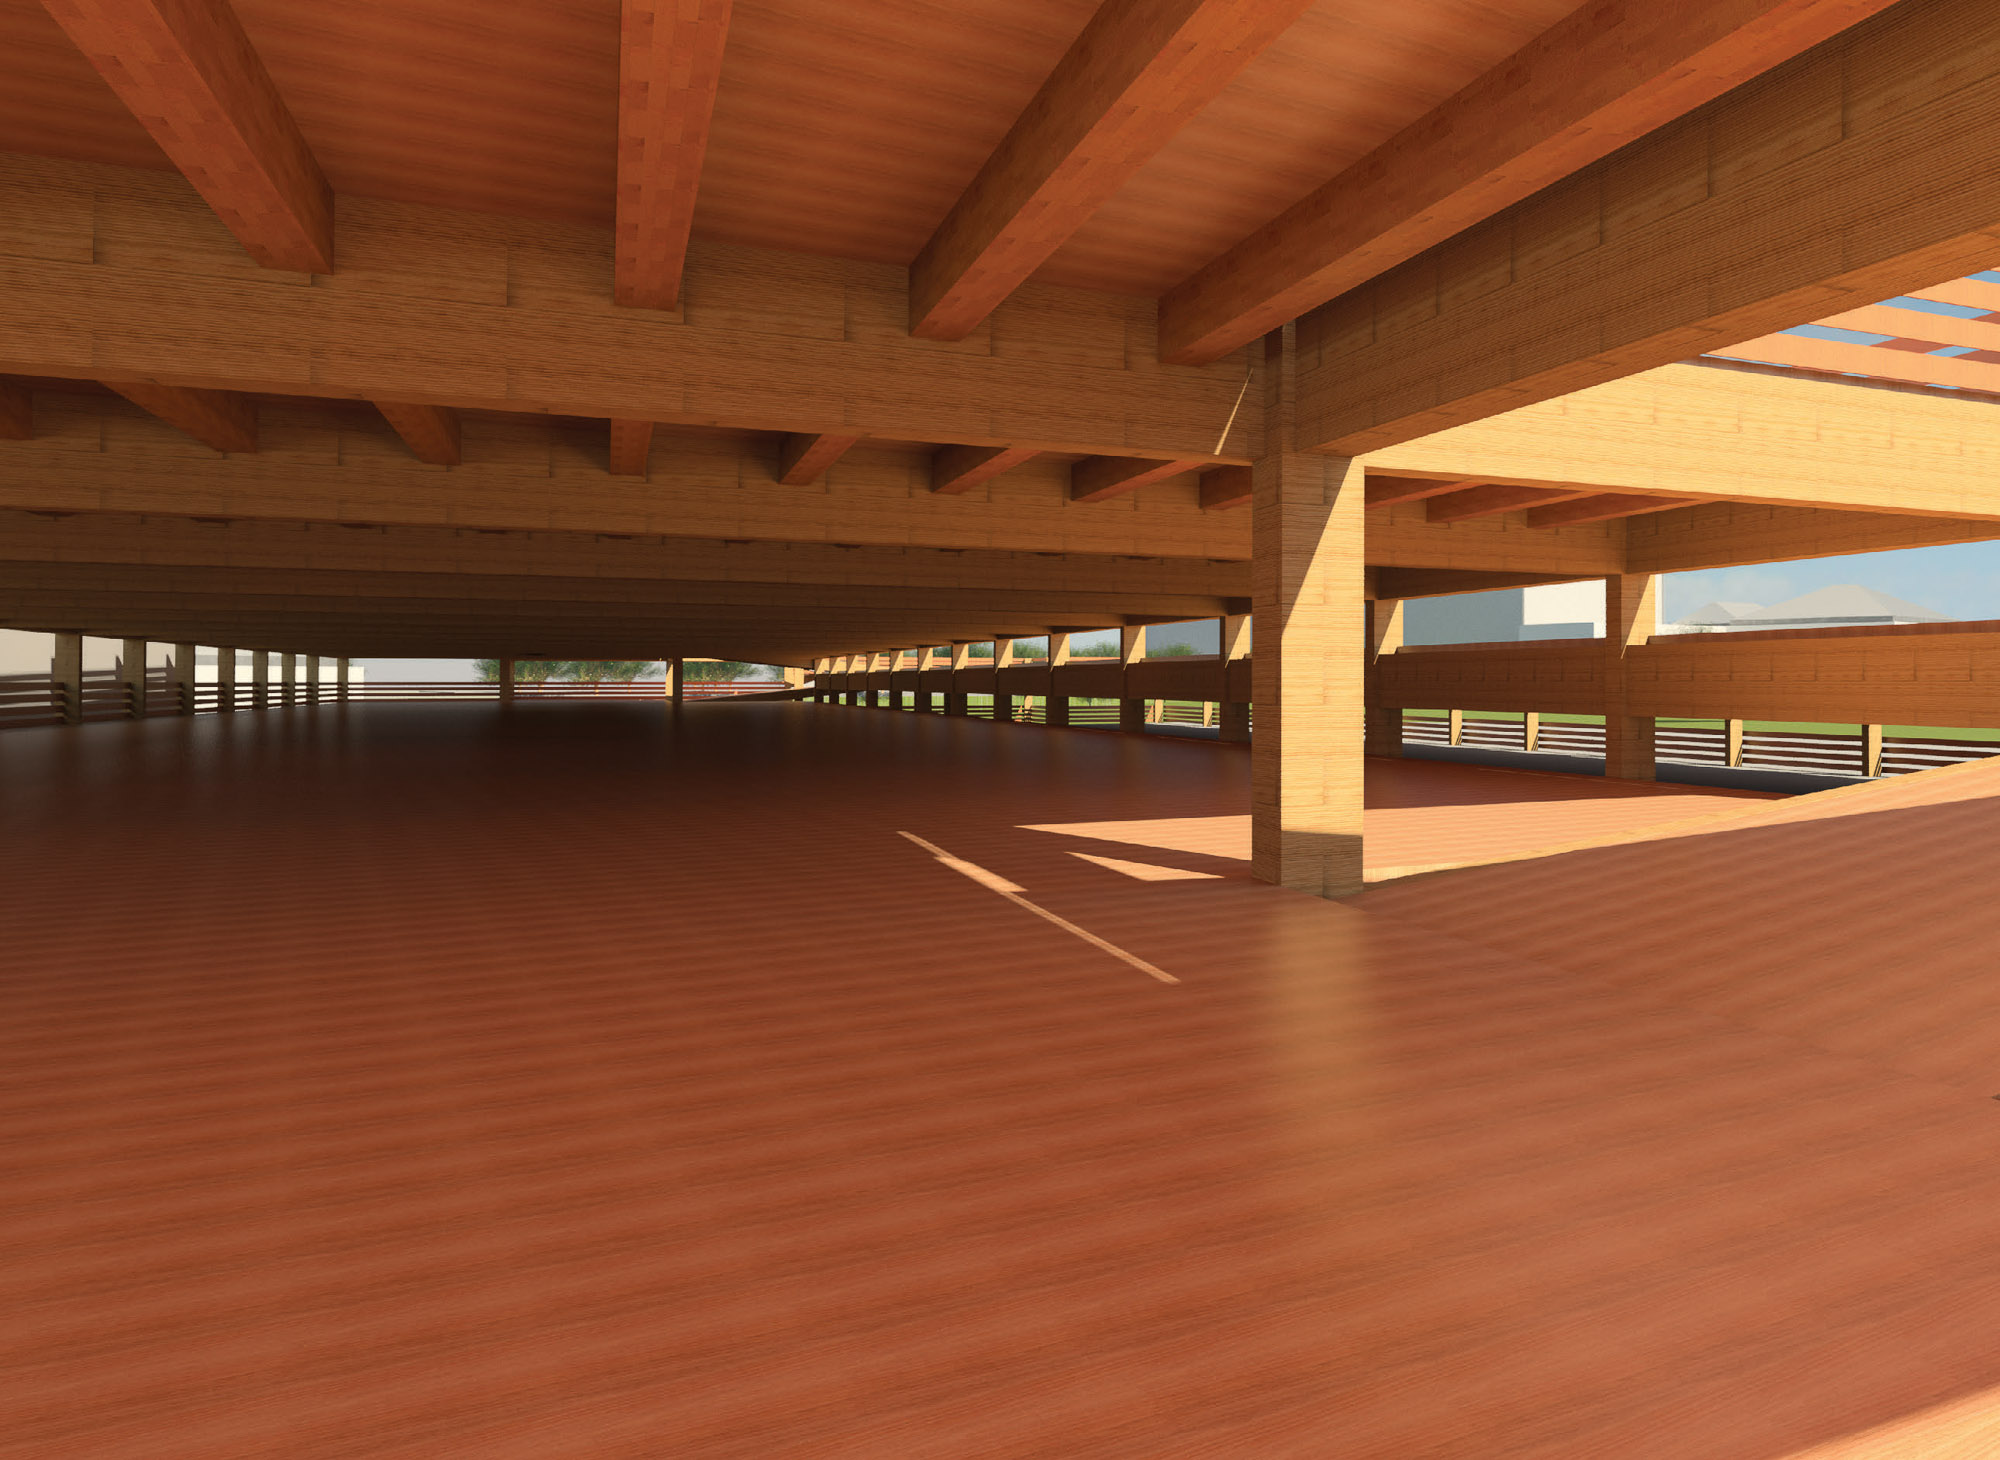 Internal view of car parking structure